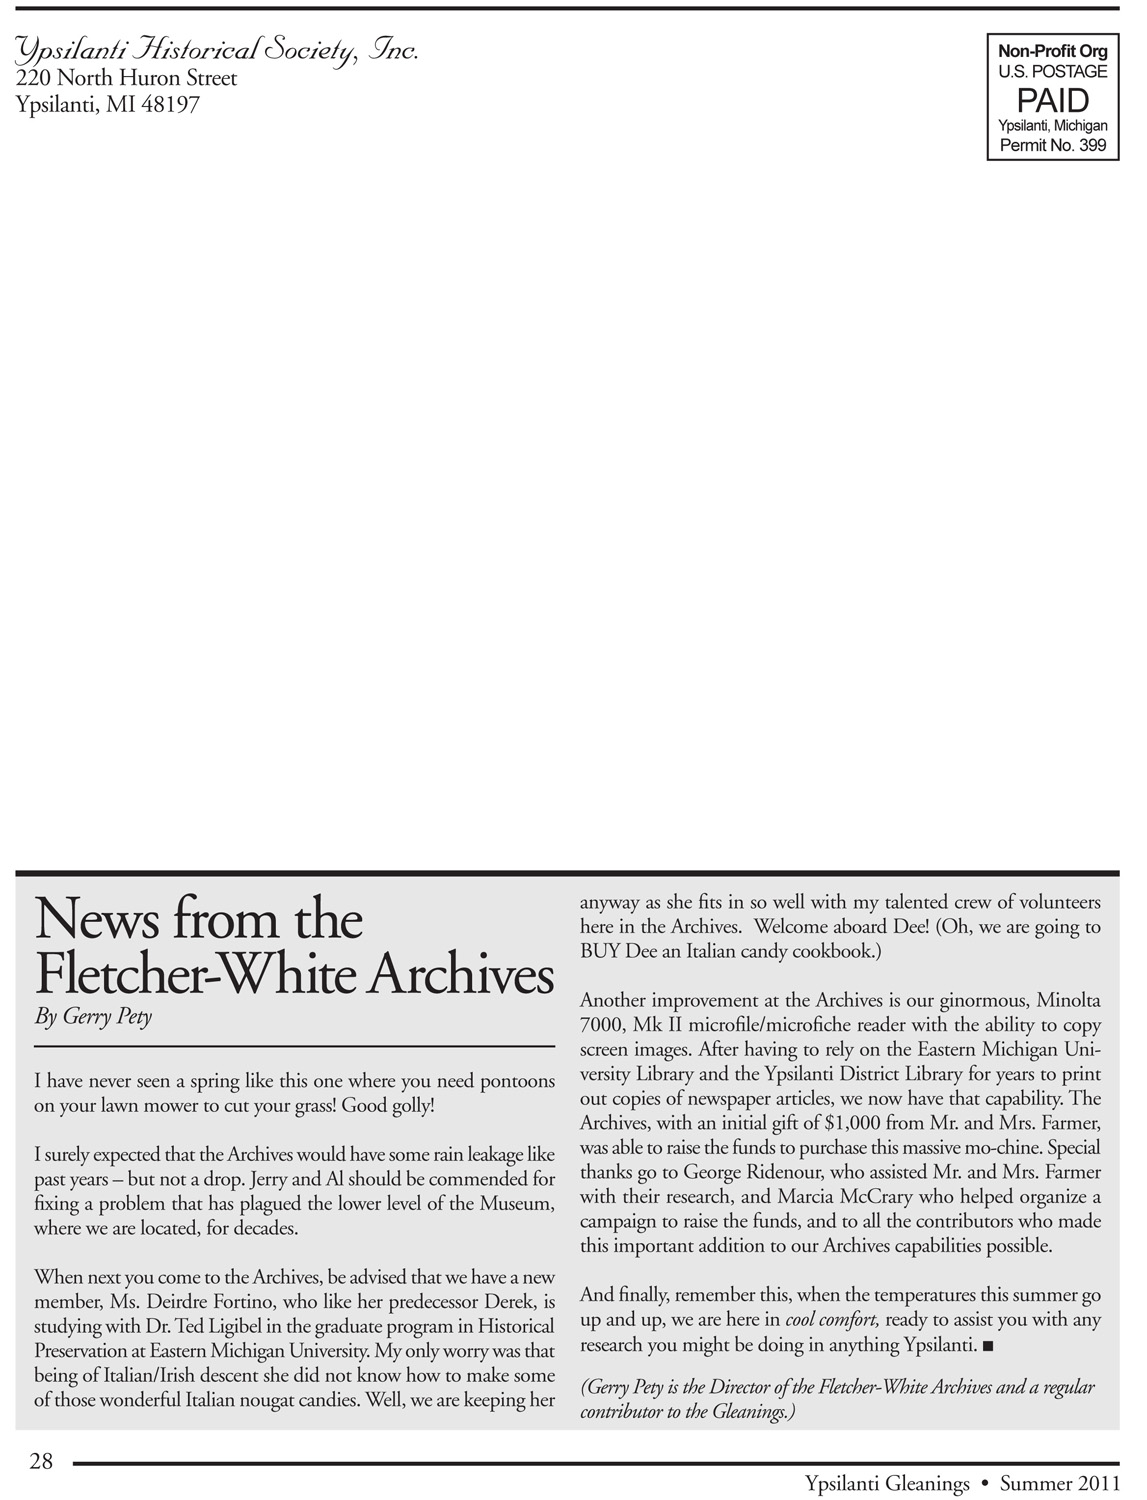 News from the Fletcher-White Archives image